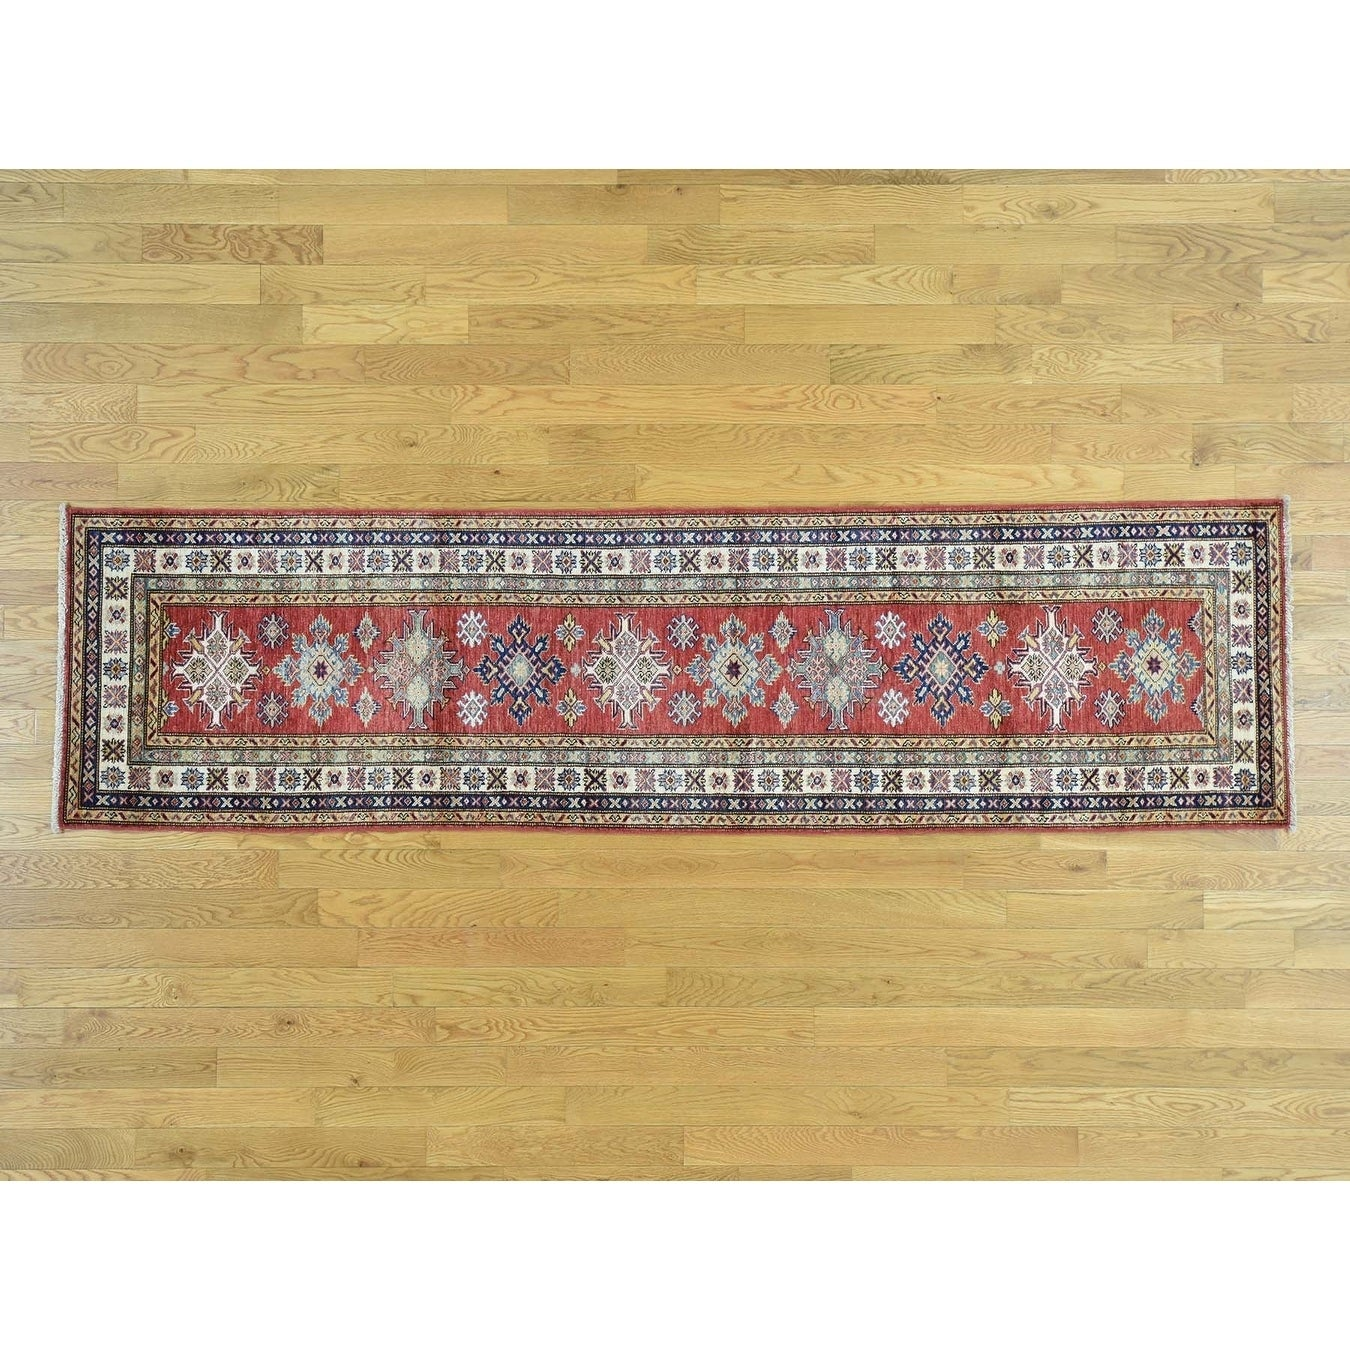 Hand Knotted Red Kazak with Wool Oriental Rug - 26 x 96